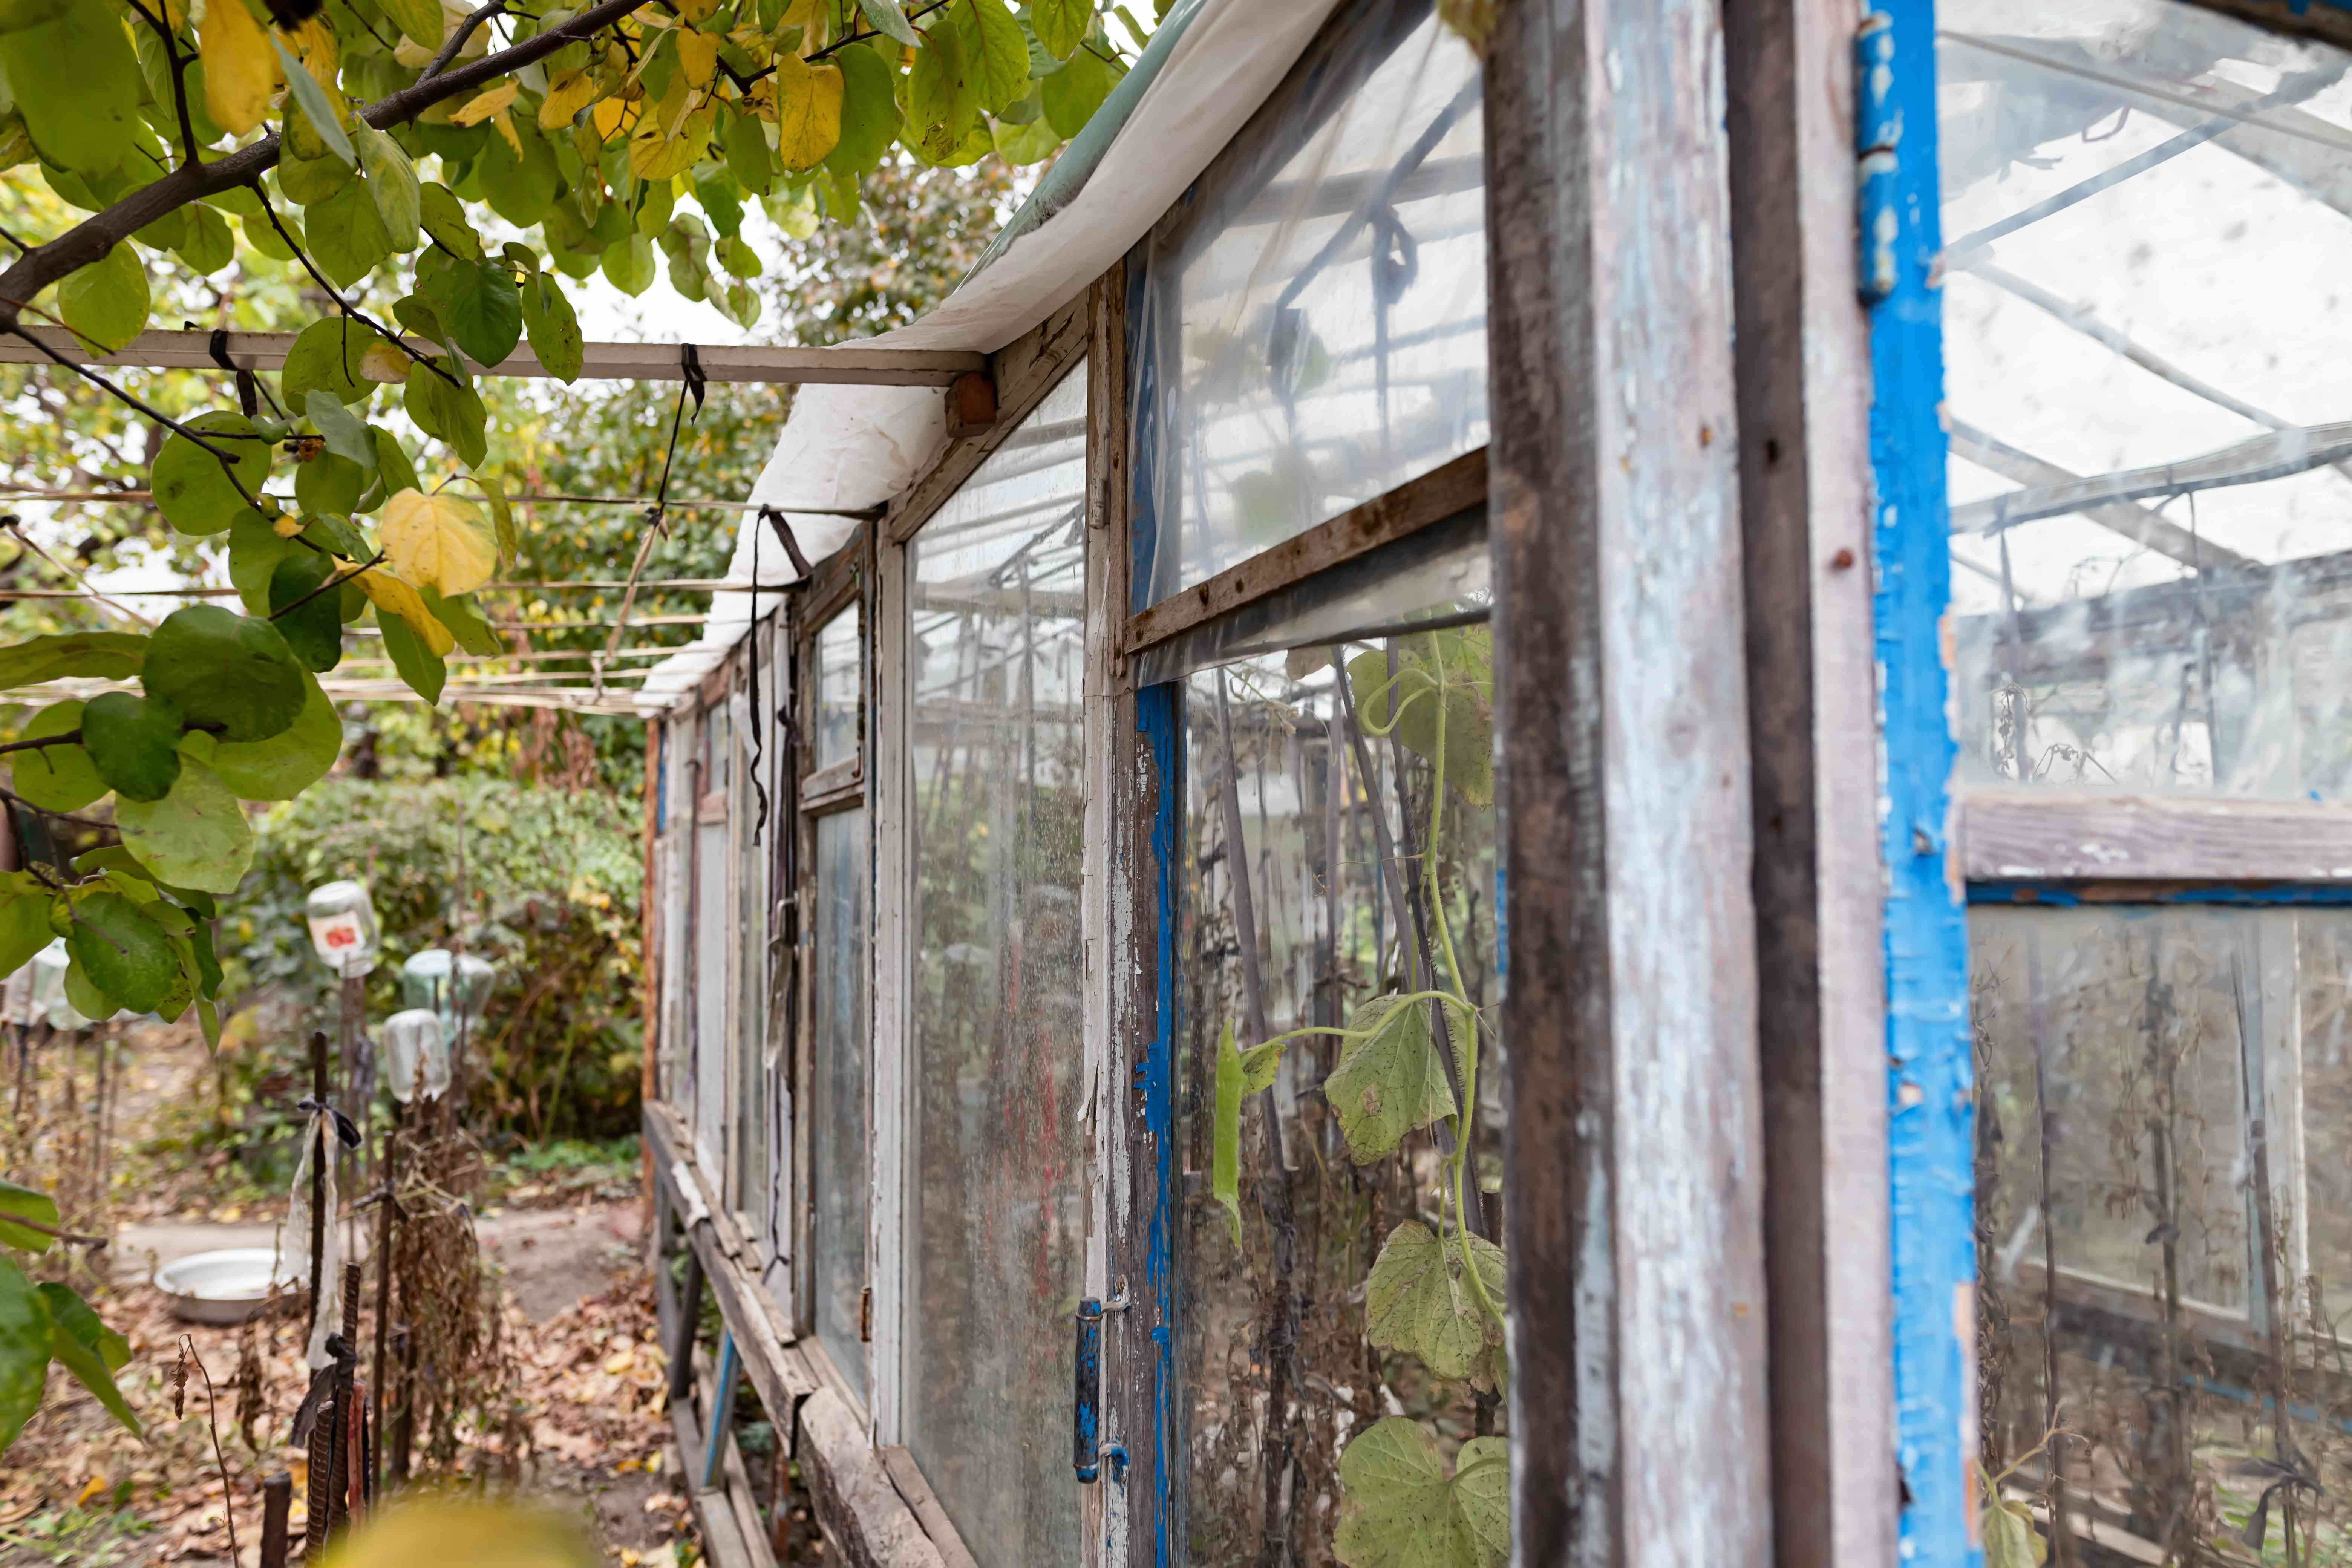 View of the greenhouse made of old window frames and improvised materials